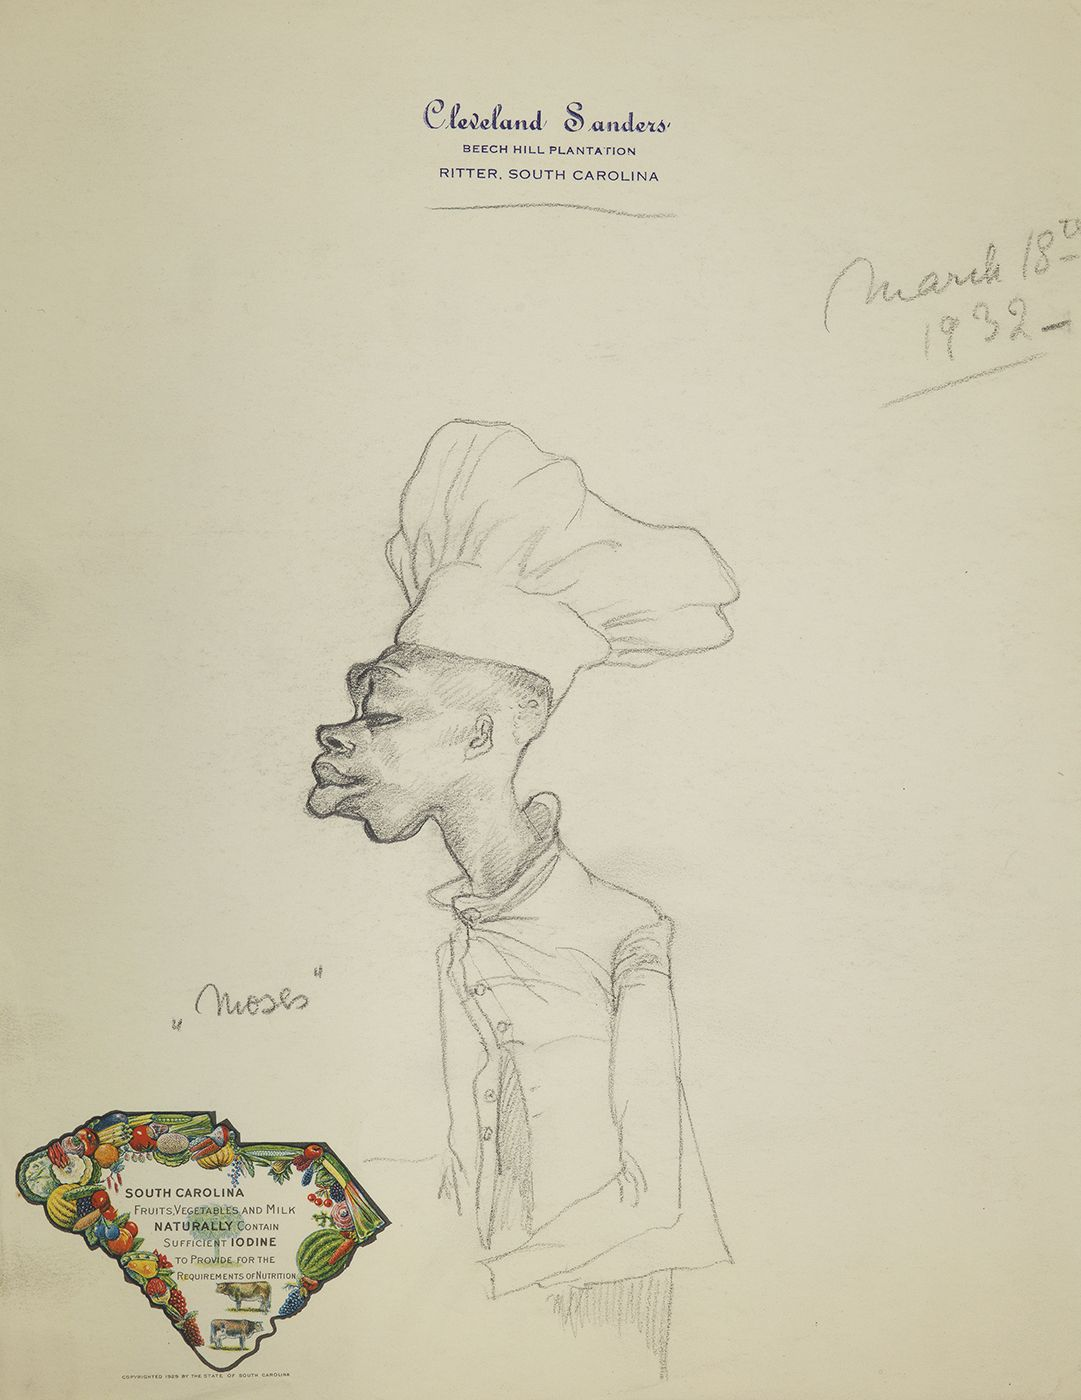 Hilla Rebay, Moses, Graphite on paper, 10 3/4 x 8 1/4 inches, pencil sketch of man in chefs uniform. Hilla Rebay was an abstract artist and co-founder of the Guggenheim.